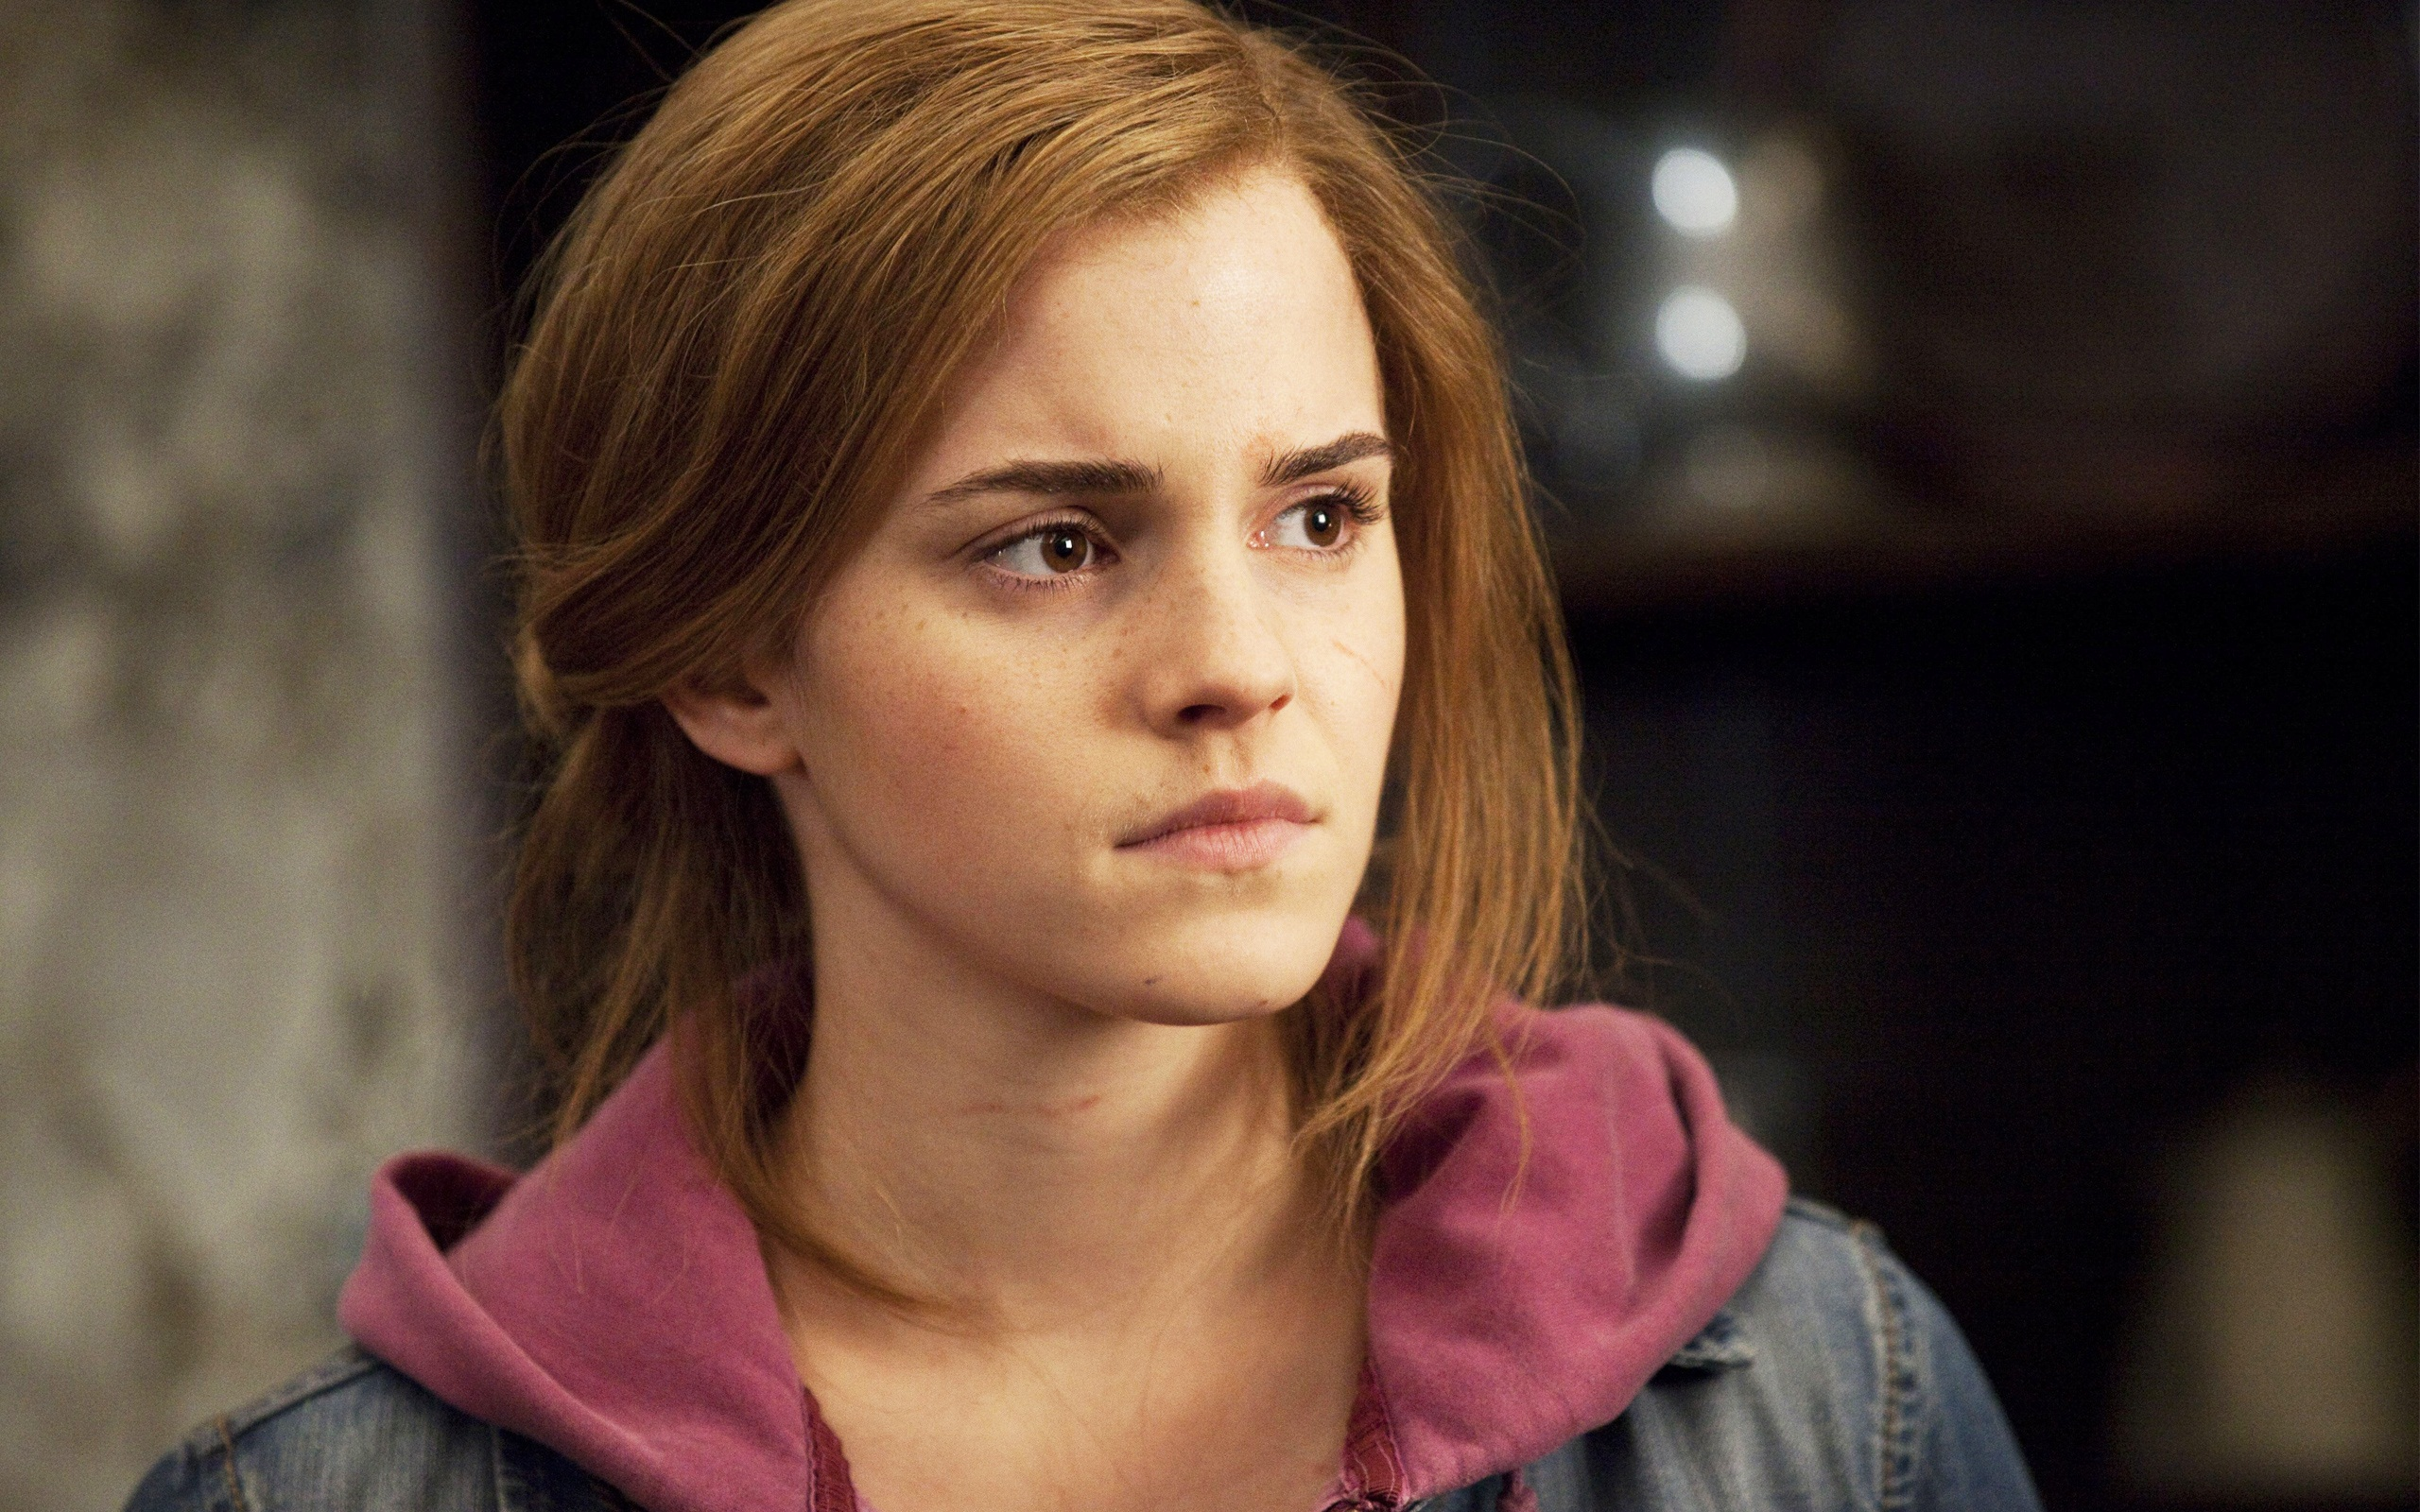 Emma Watson in Deathly Hallows Part 2 wallpaper